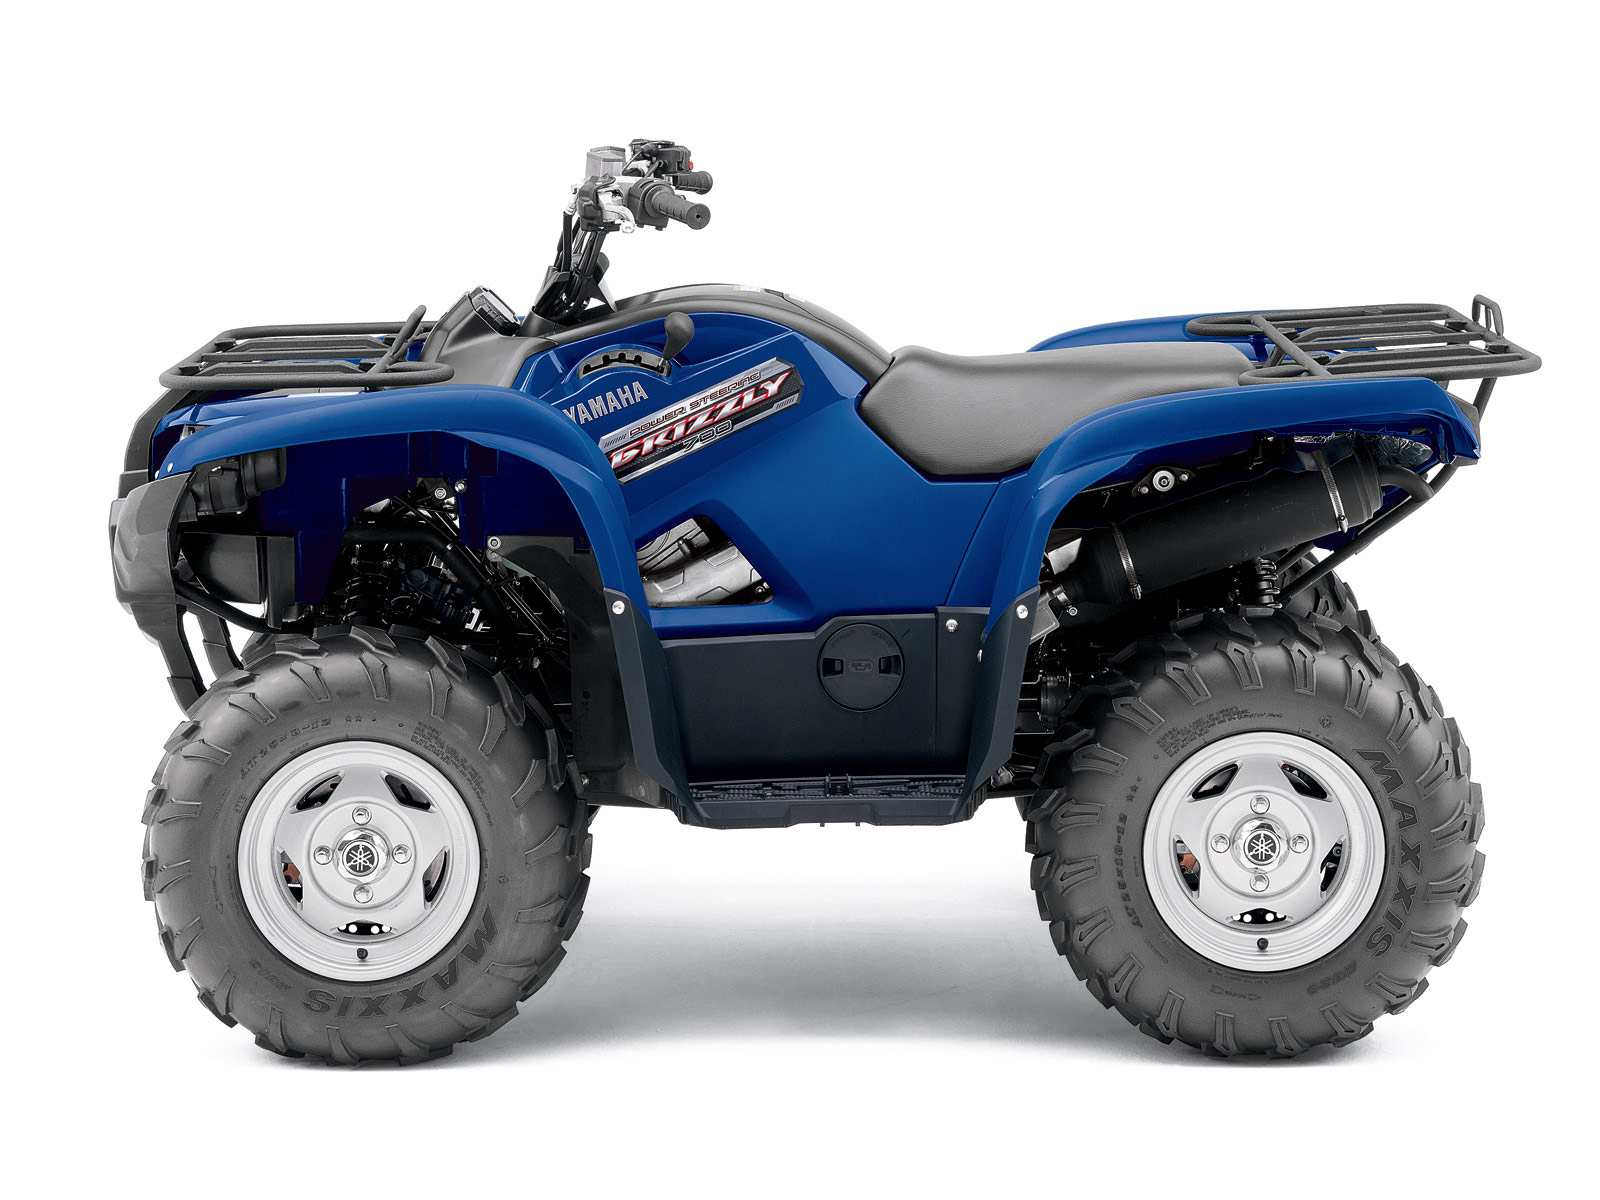 2012 yamaha grizzly 700 fi auto 4x4 eps atv specifications